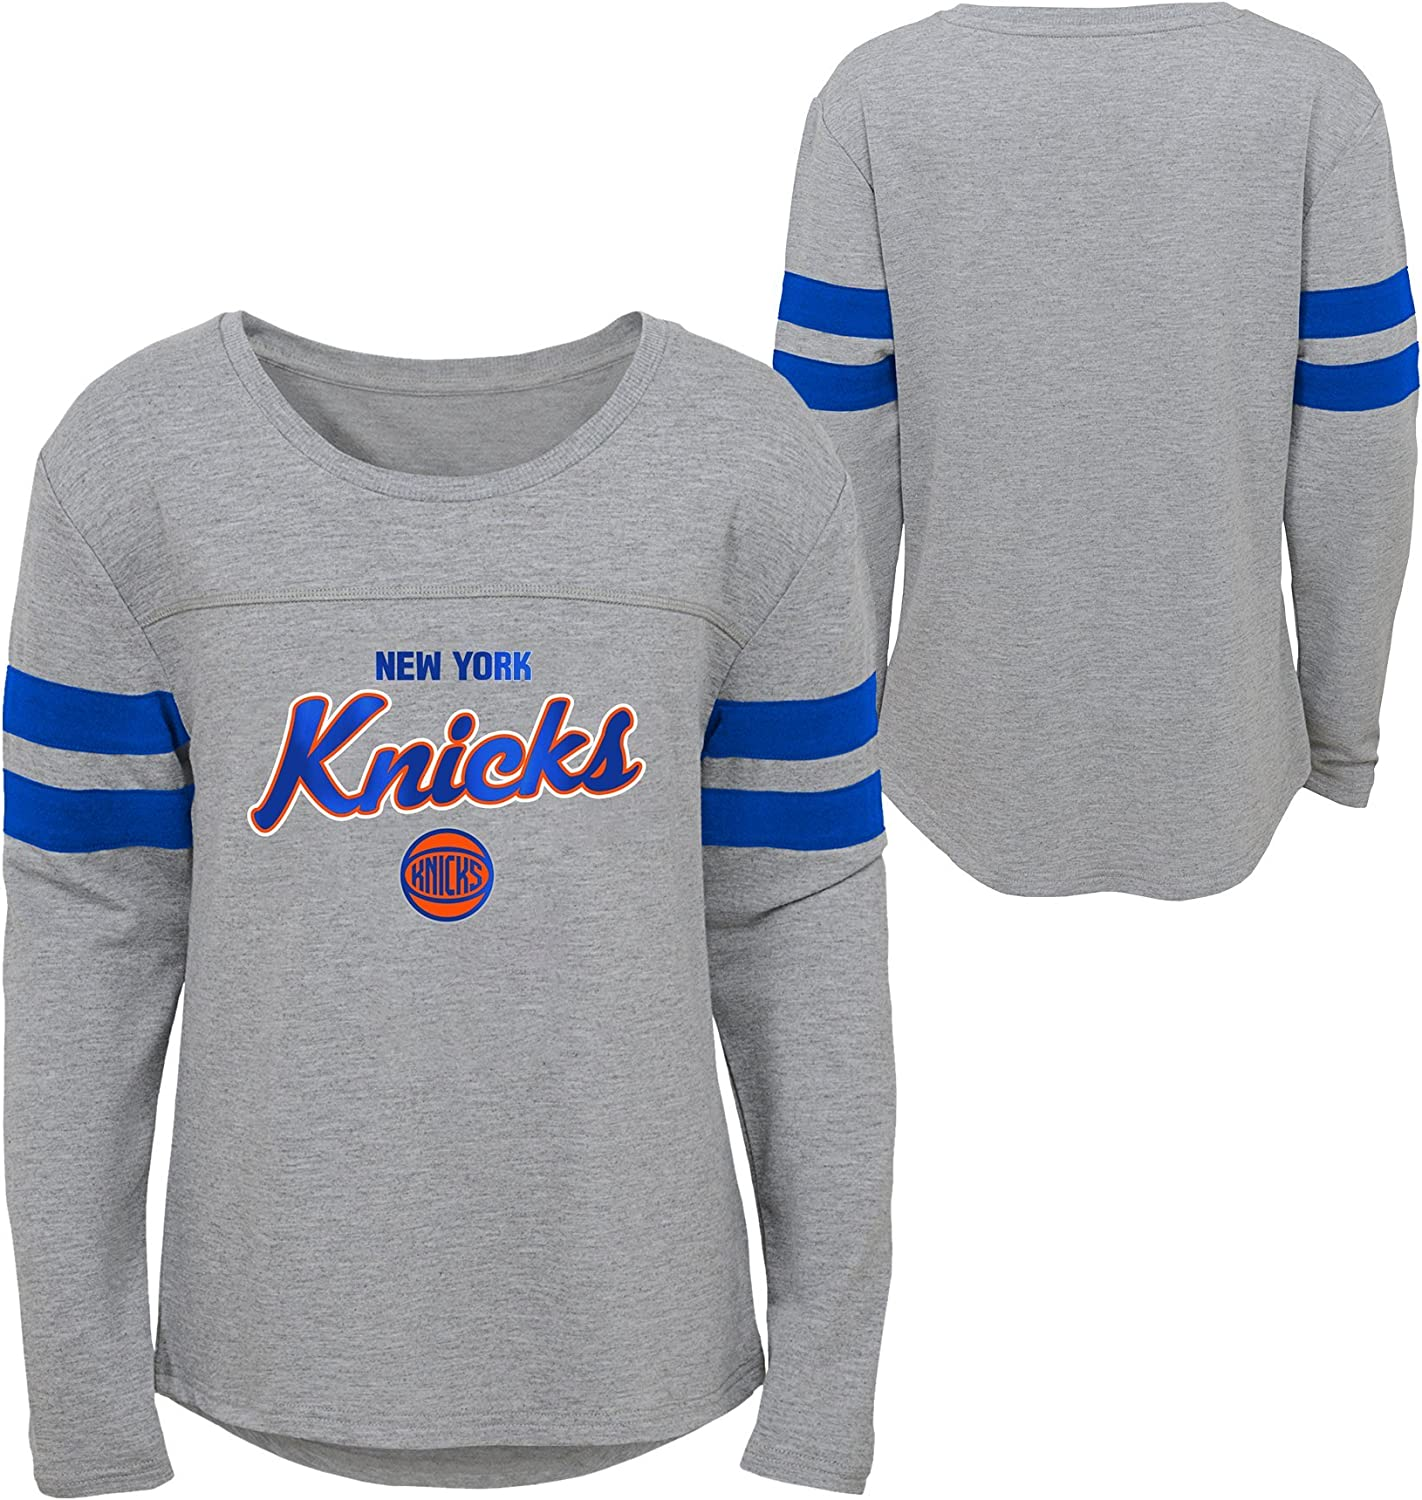 Youth Small Heather Grey NBA by Outerstuff NBA Kids /& Youth Girls New York Knicks 3 Point Long Sleeve Dolman Tee 7-8